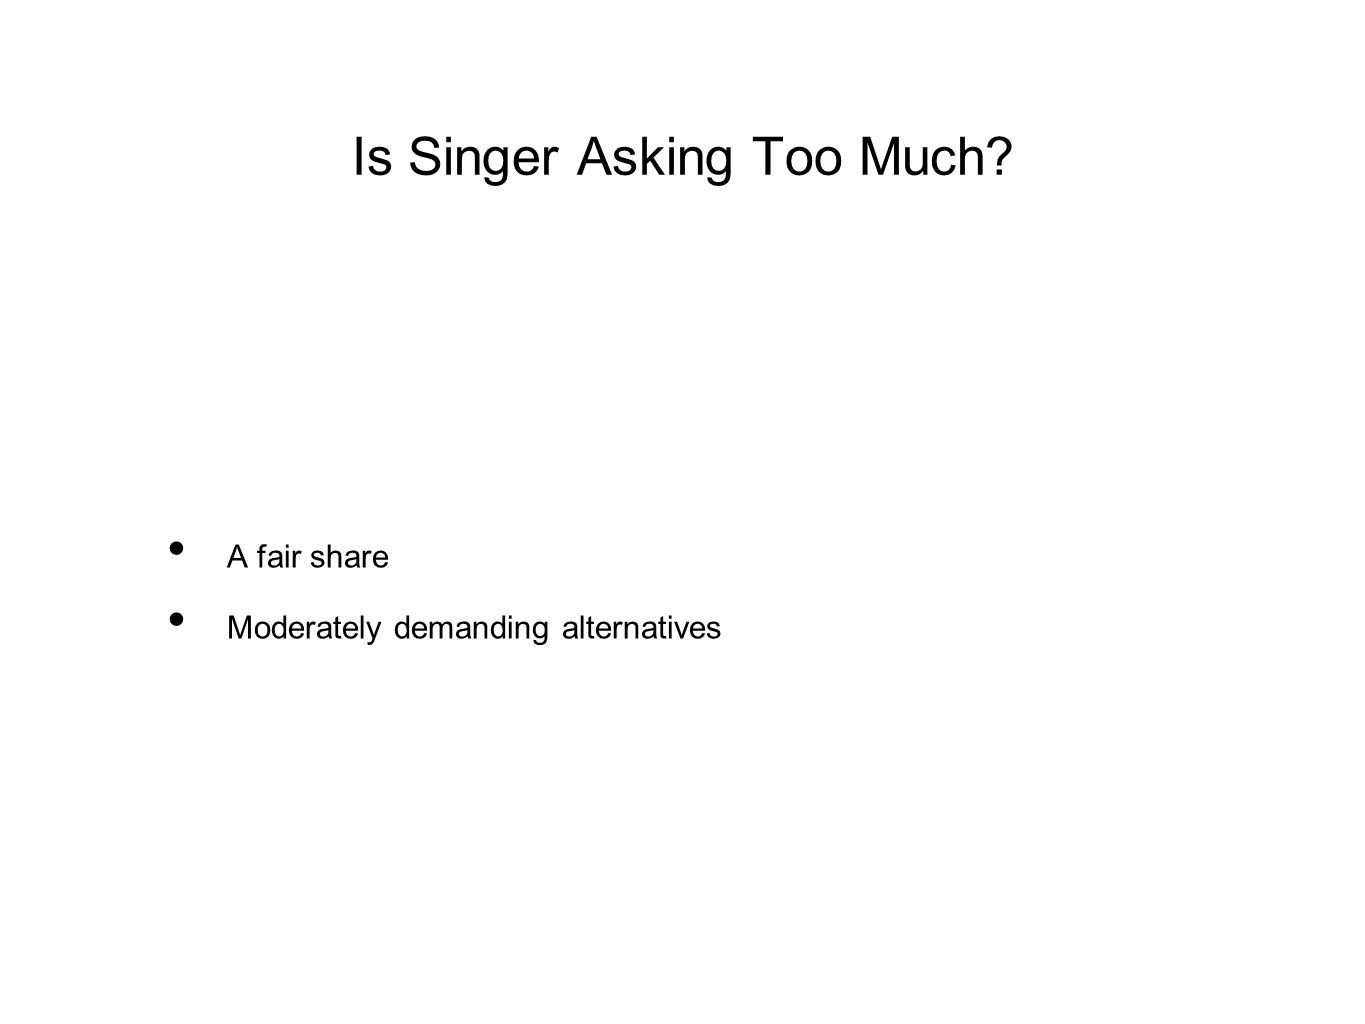 Is Singer Asking Too Much? A fair share Moderately demanding alternatives